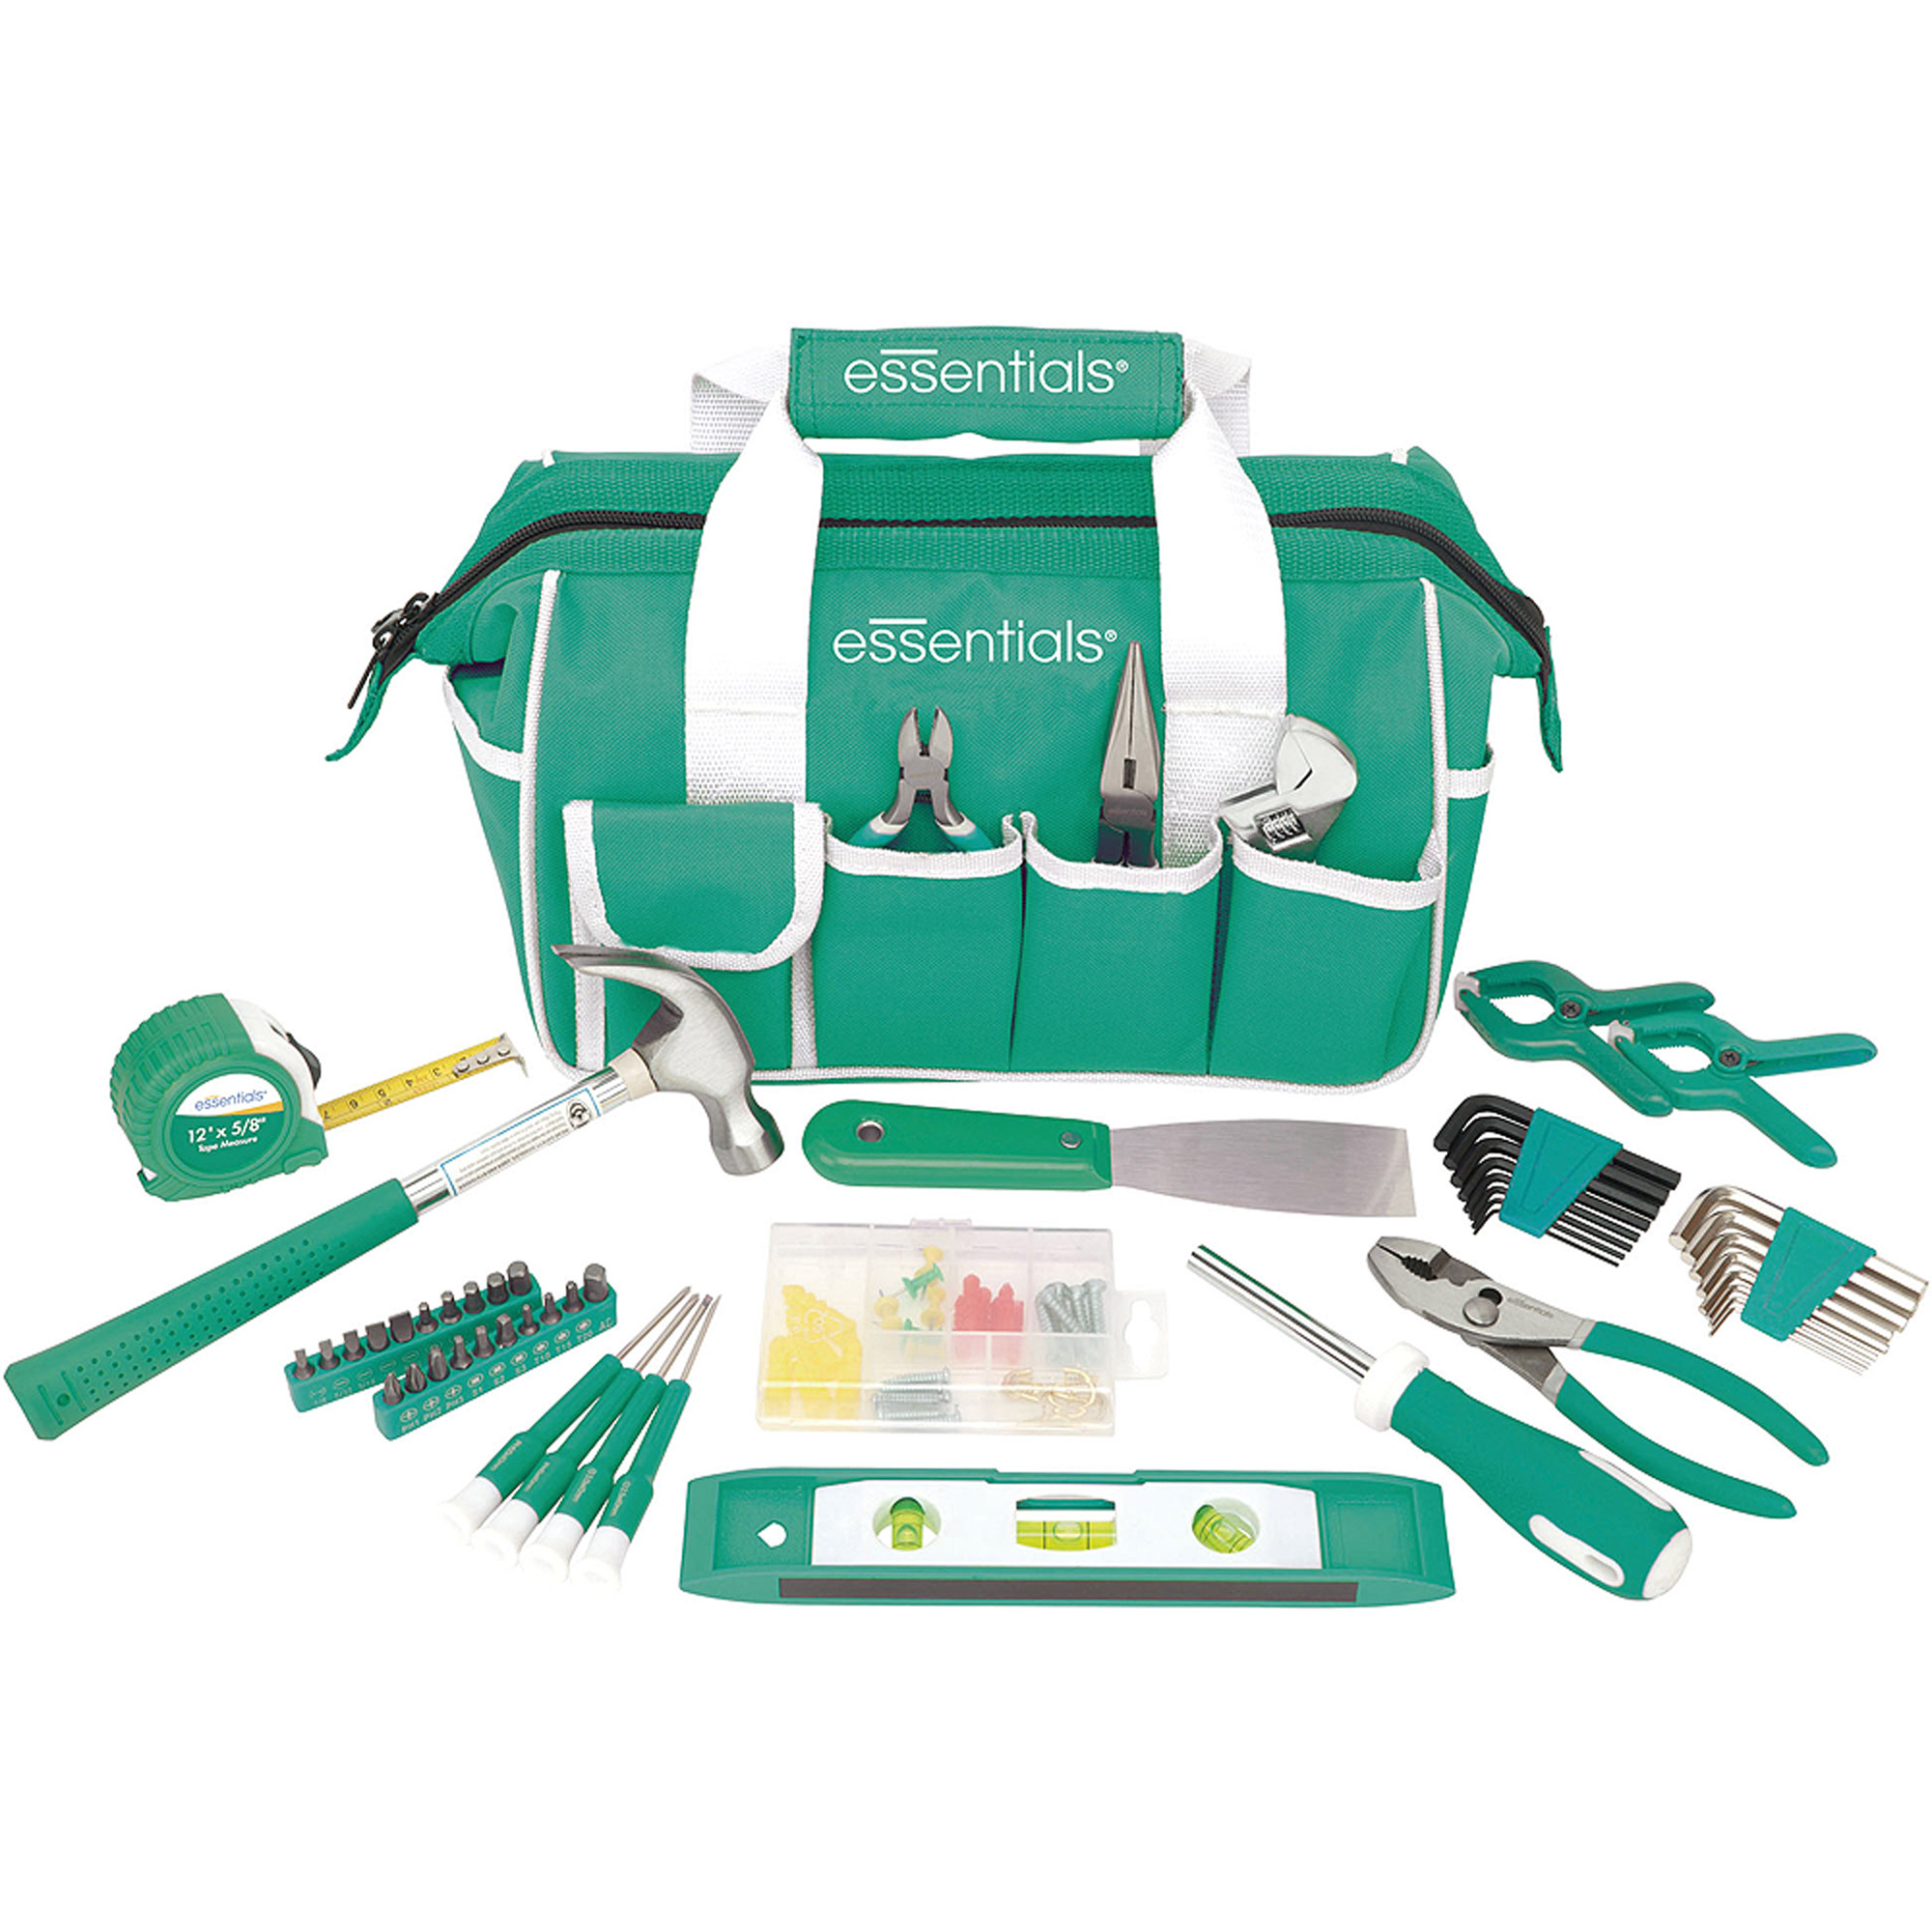 Essentials 53-Piece Around-The-House Tool Kit, Teal